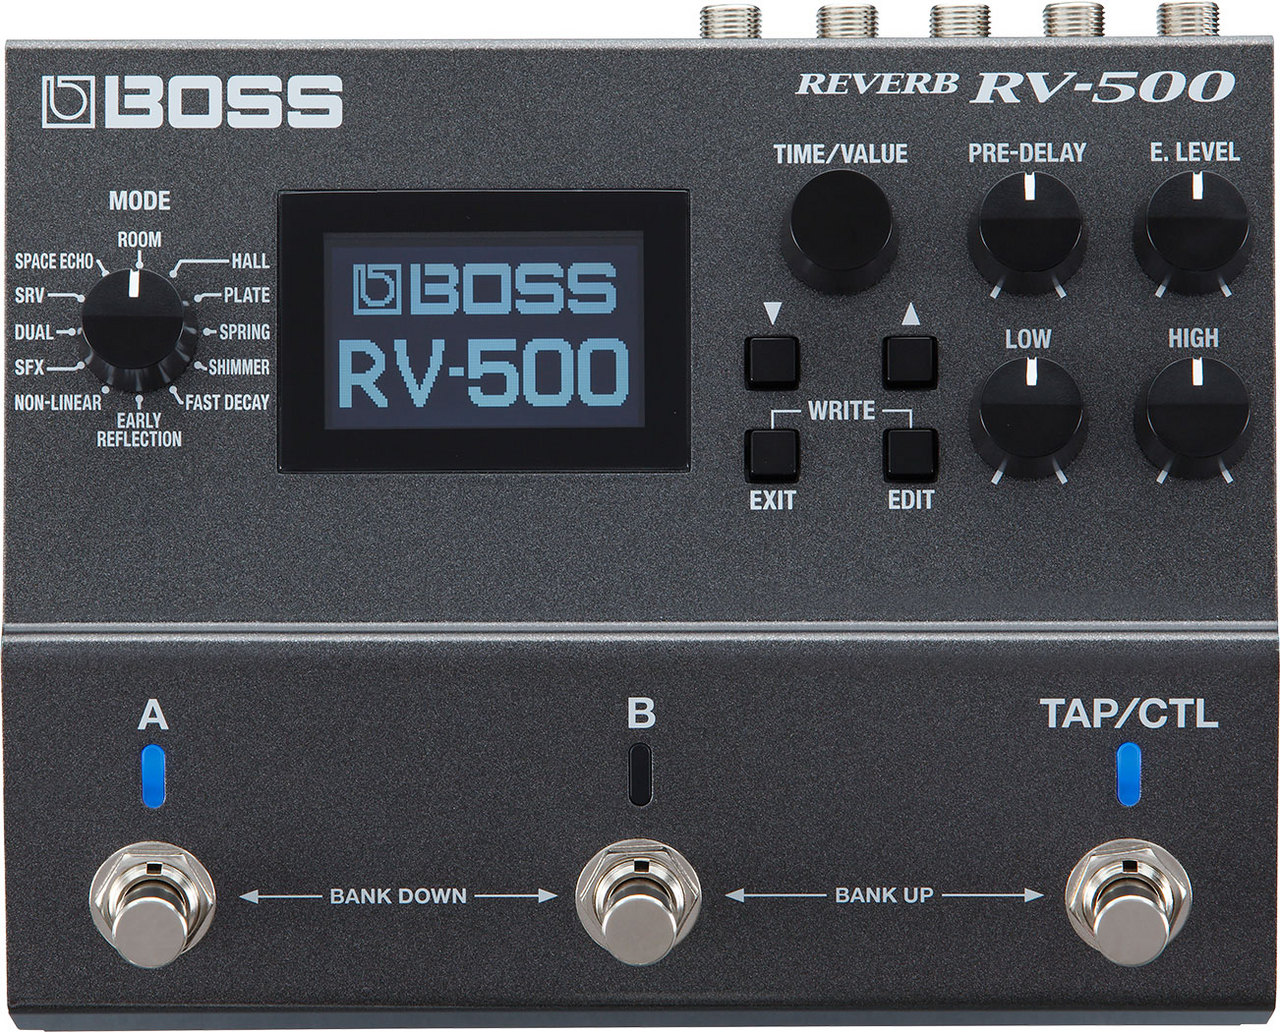 BOSS BOSS RV-500 multi reverb []